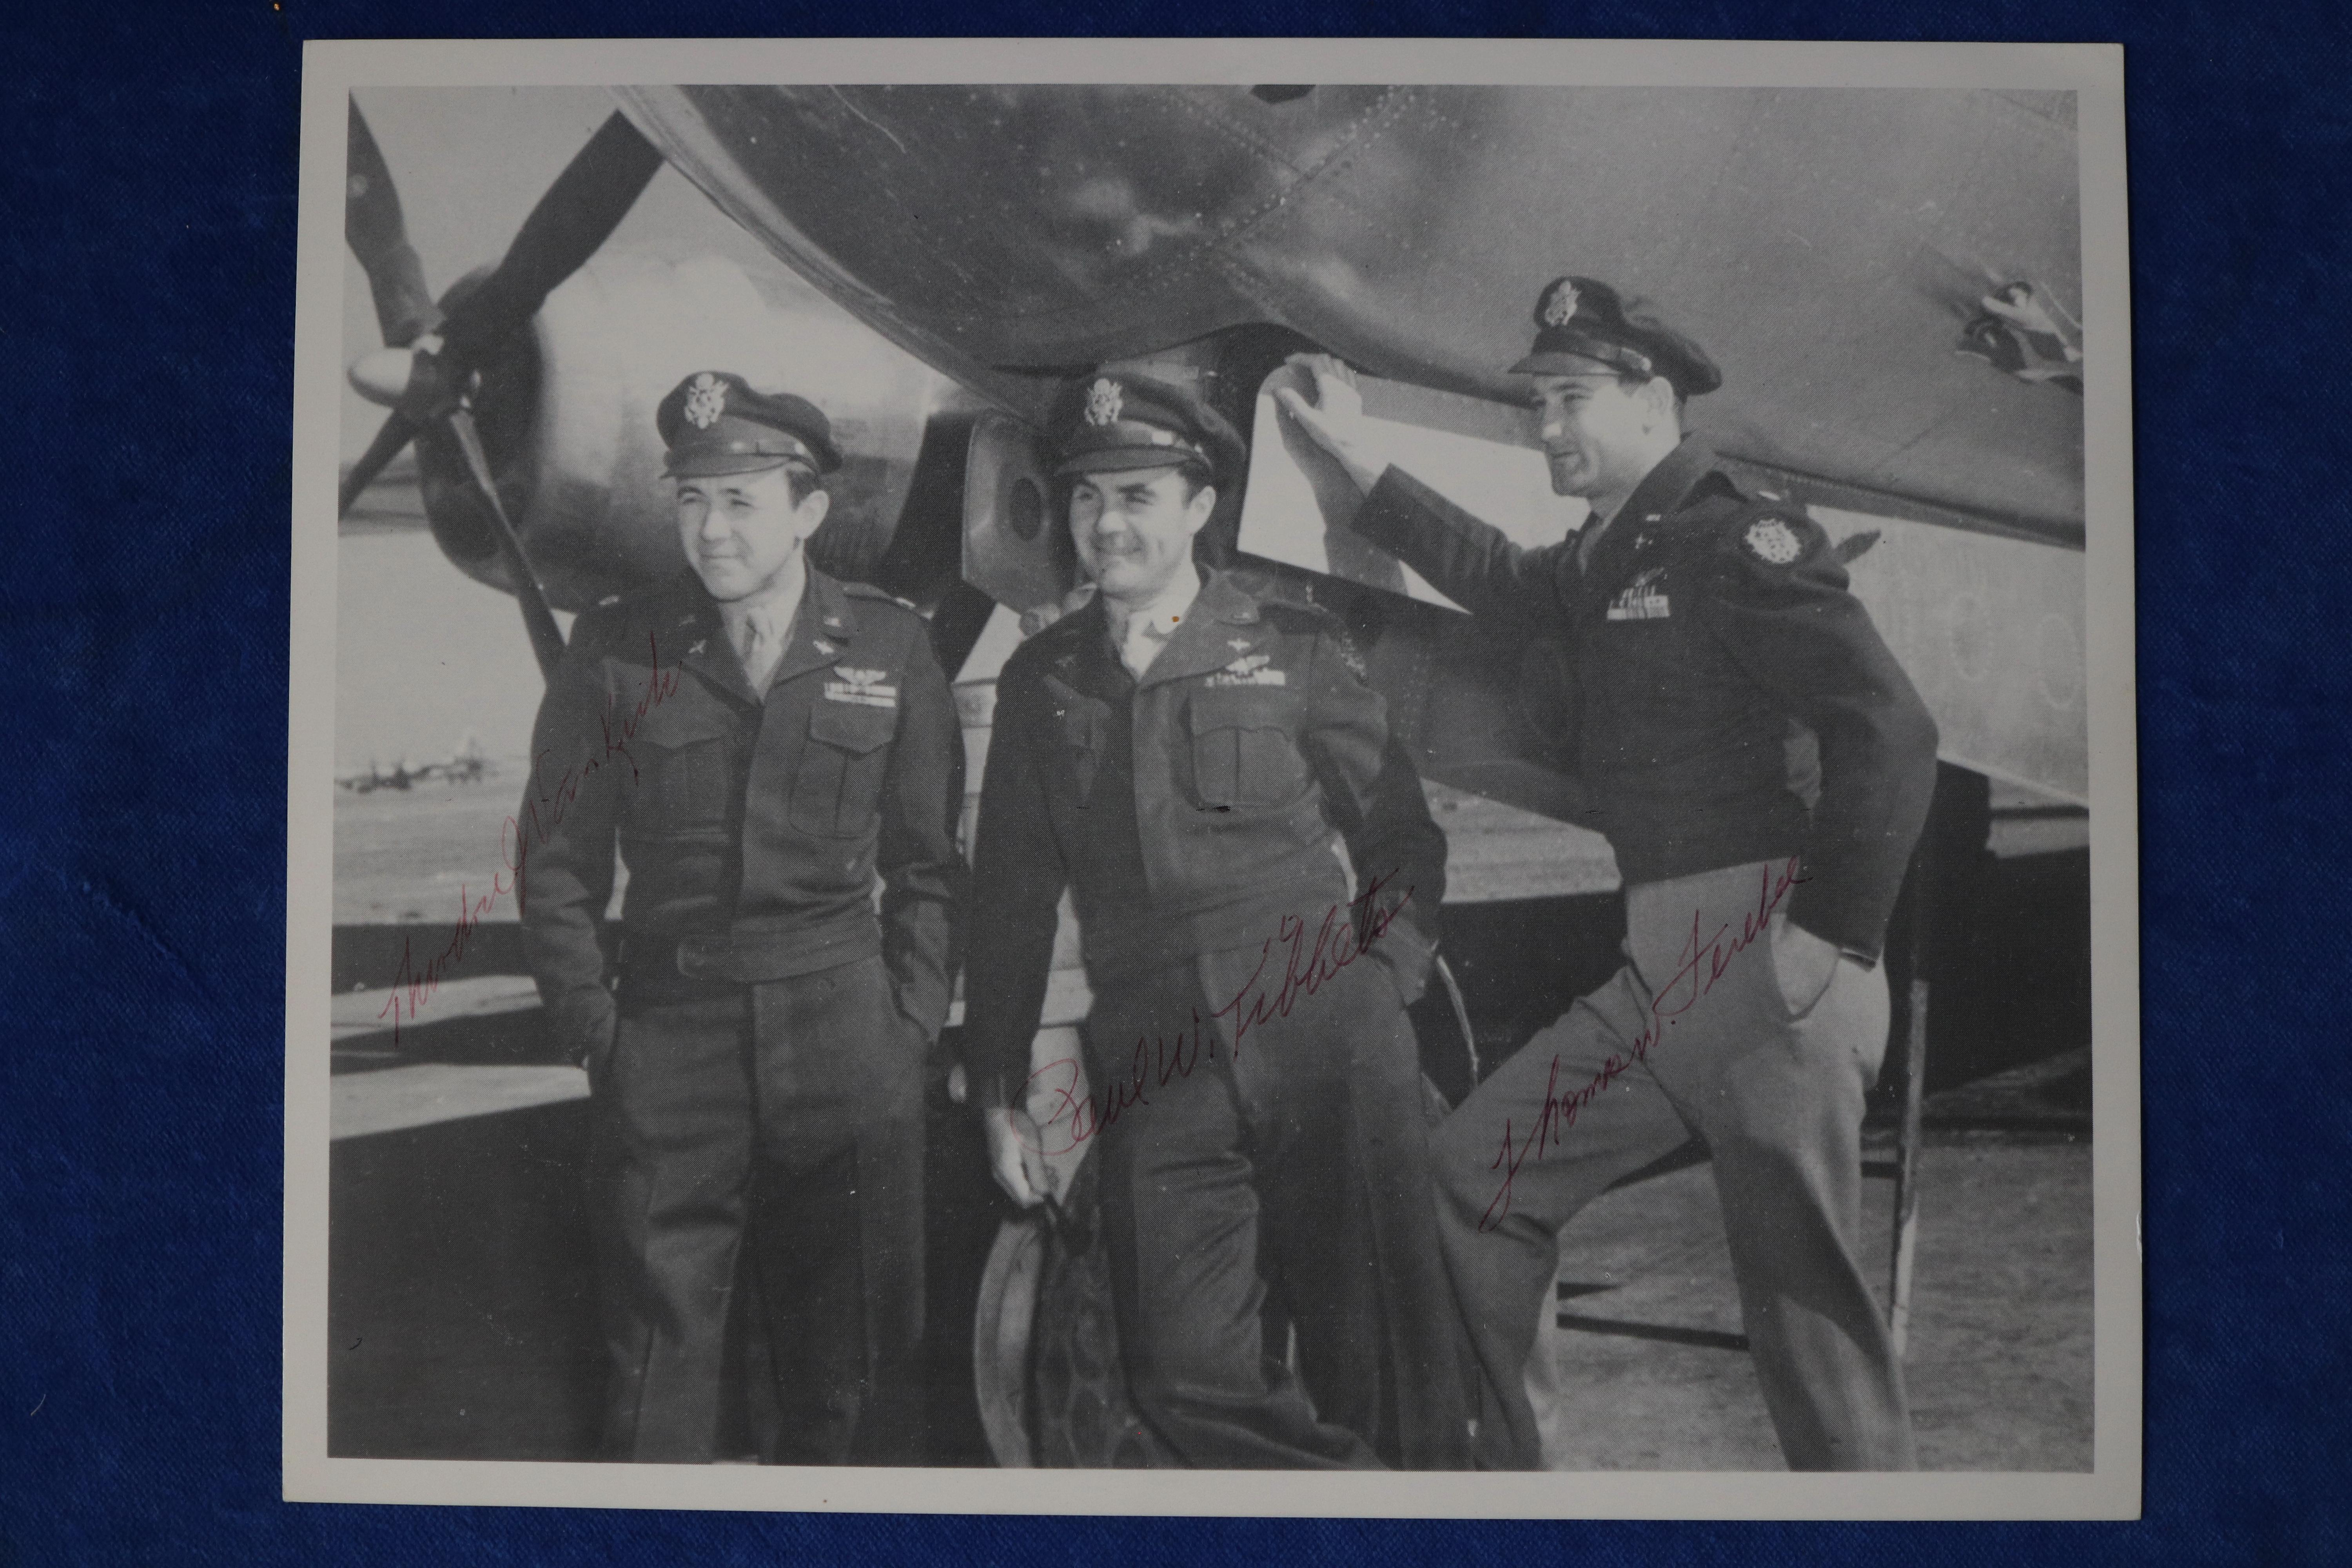 SIGNED BLACK & WHITE PHOTOS, ENOLA GAY FLIGHT CREW, SIGNED IN FOUNTAIN PEN BY PAUL TIBBETS, MORRIS JEPPSON AND THEODORE VAN KIRK, AUTHENTICITY CERTIFICATE FROM AMAOLINE 100118